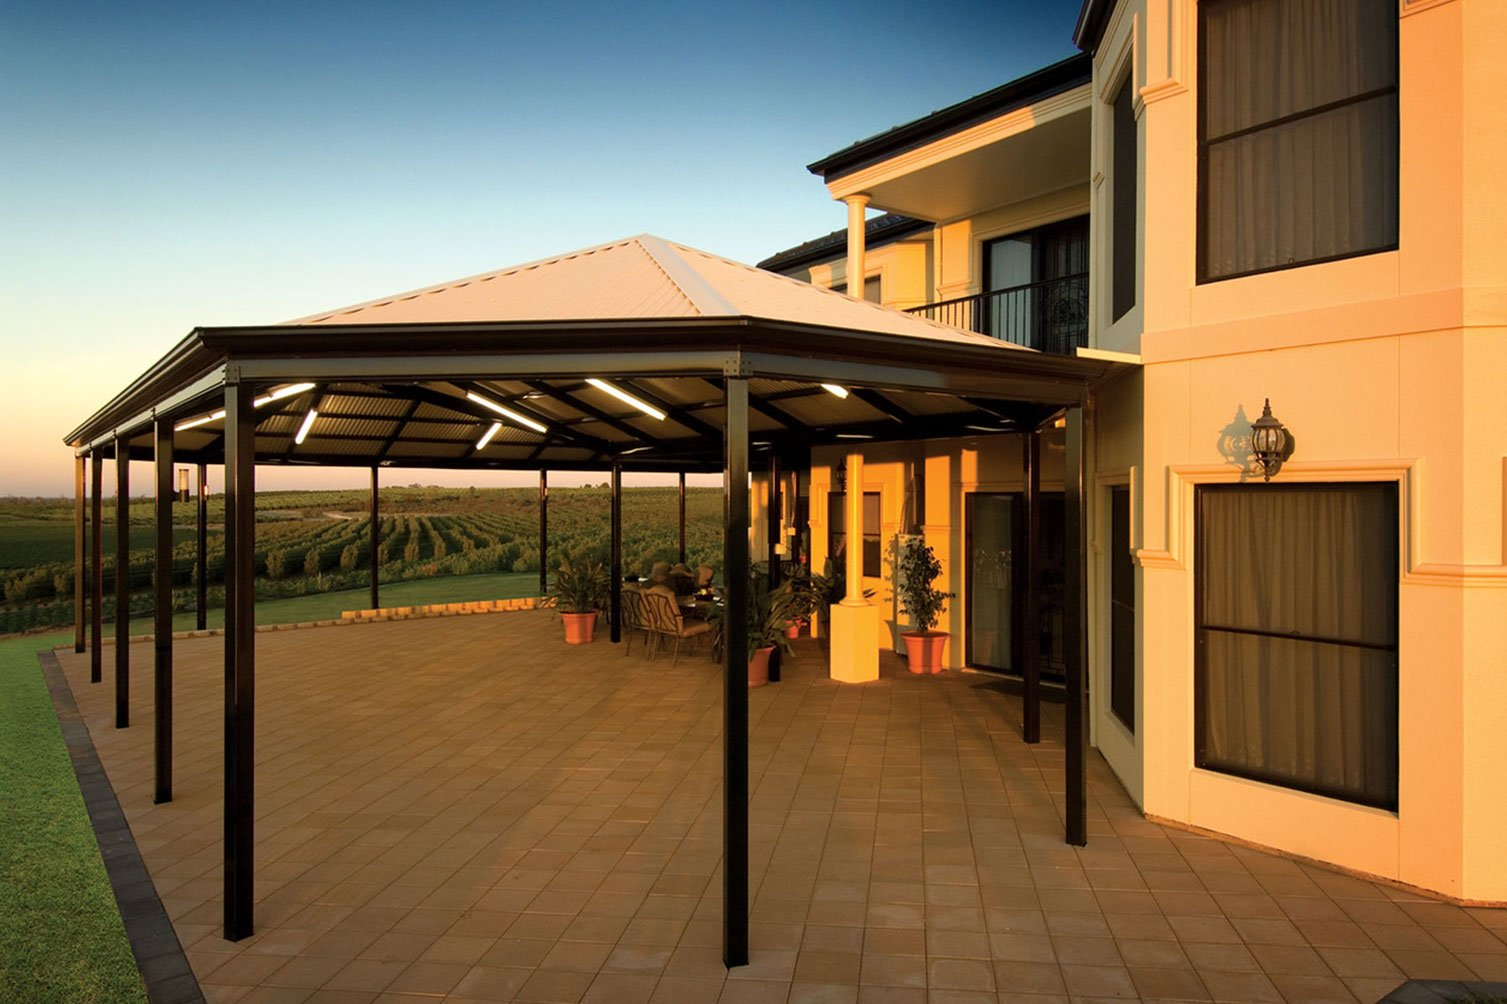 Luxuriate yourself with outdoor activities hosted in the roof patio in Byron Bay